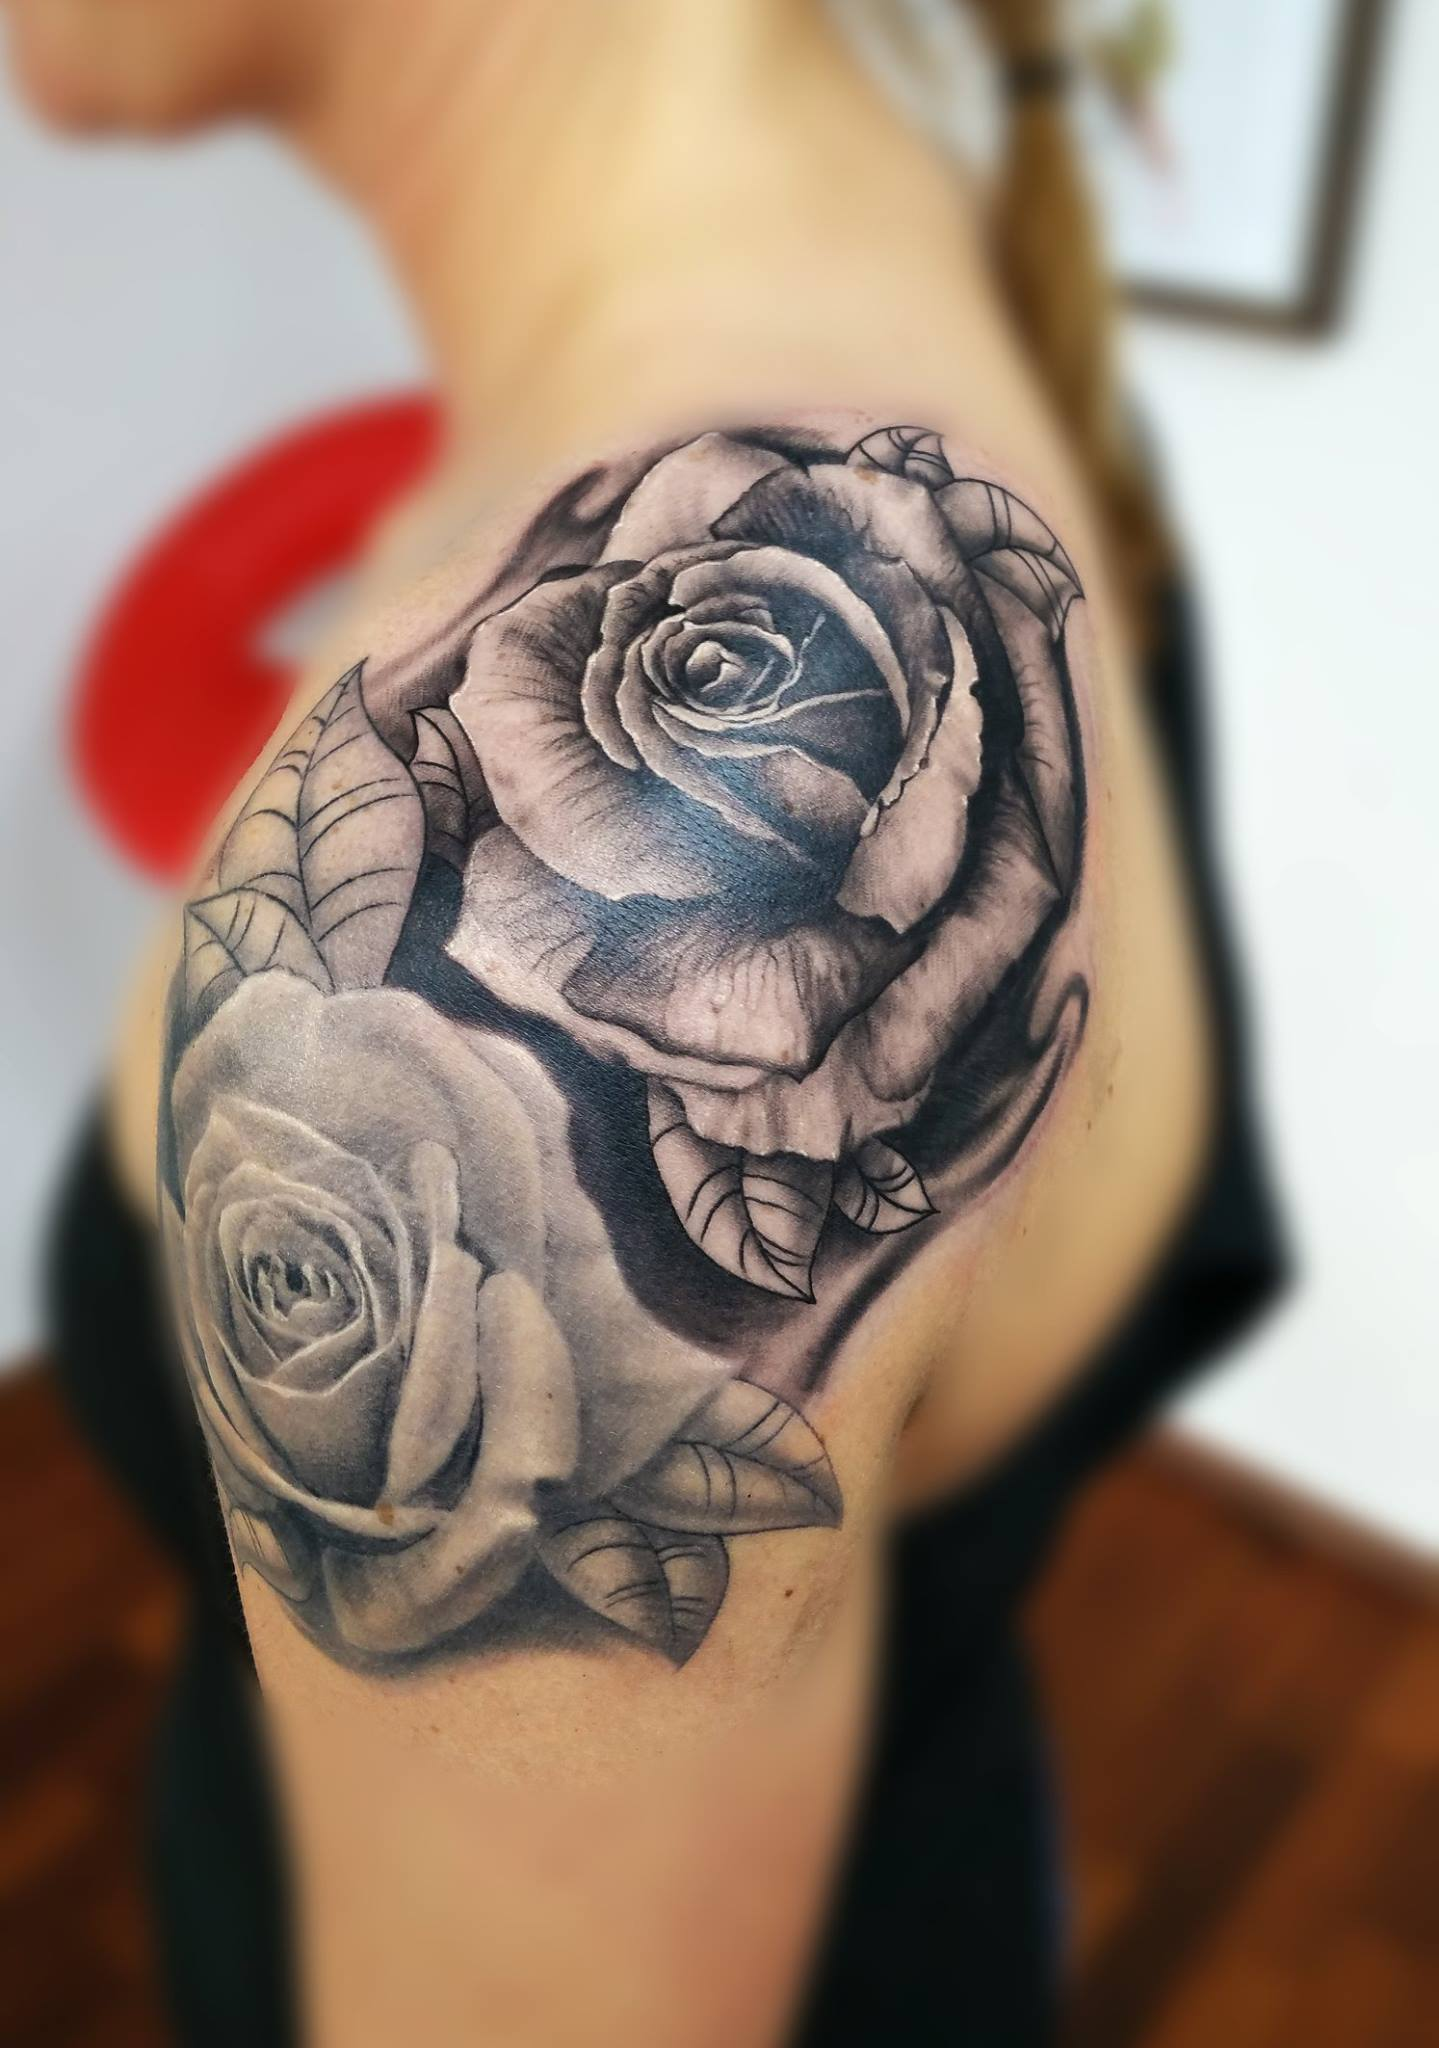 Rose tattoos with a bit transition between traditional and realism.